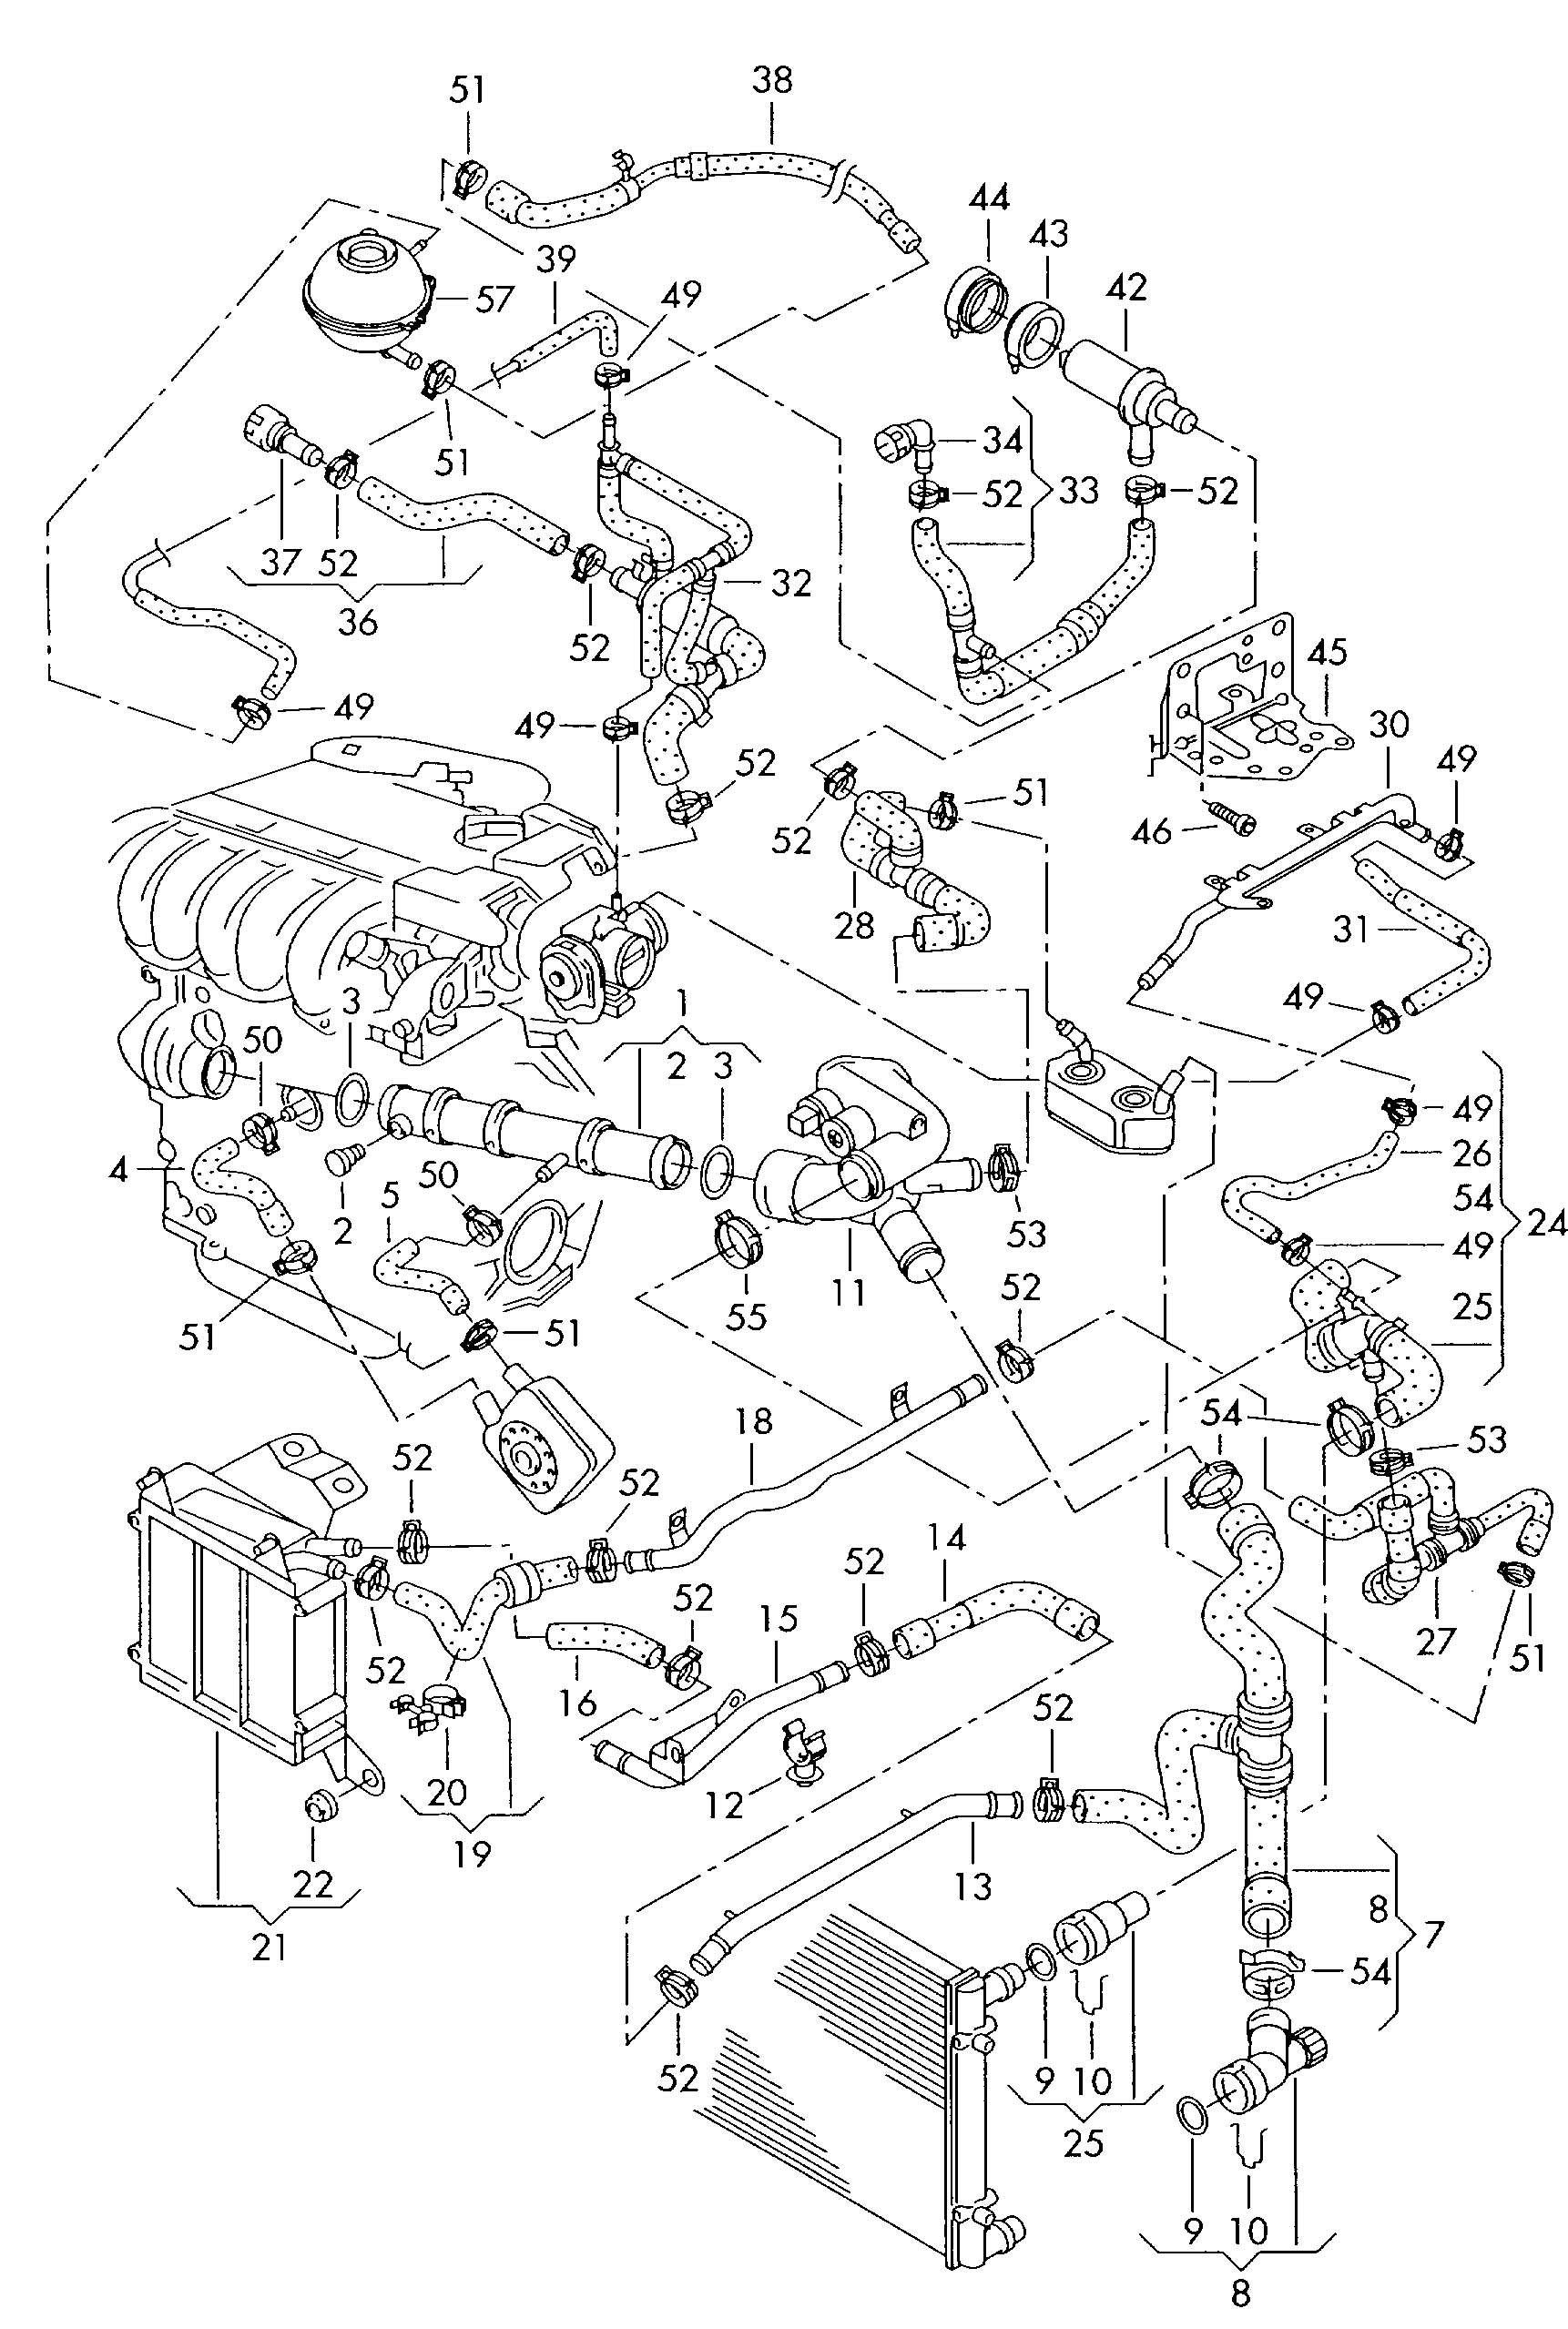 🏆 [DIAGRAM in Pictures Database] 01 Vw Jetta Engine Diagram Just Download  or Read Engine Diagram - 11.39.FORUM.ONYXUM.COMComplete Diagram Picture Database - Onyxum.com